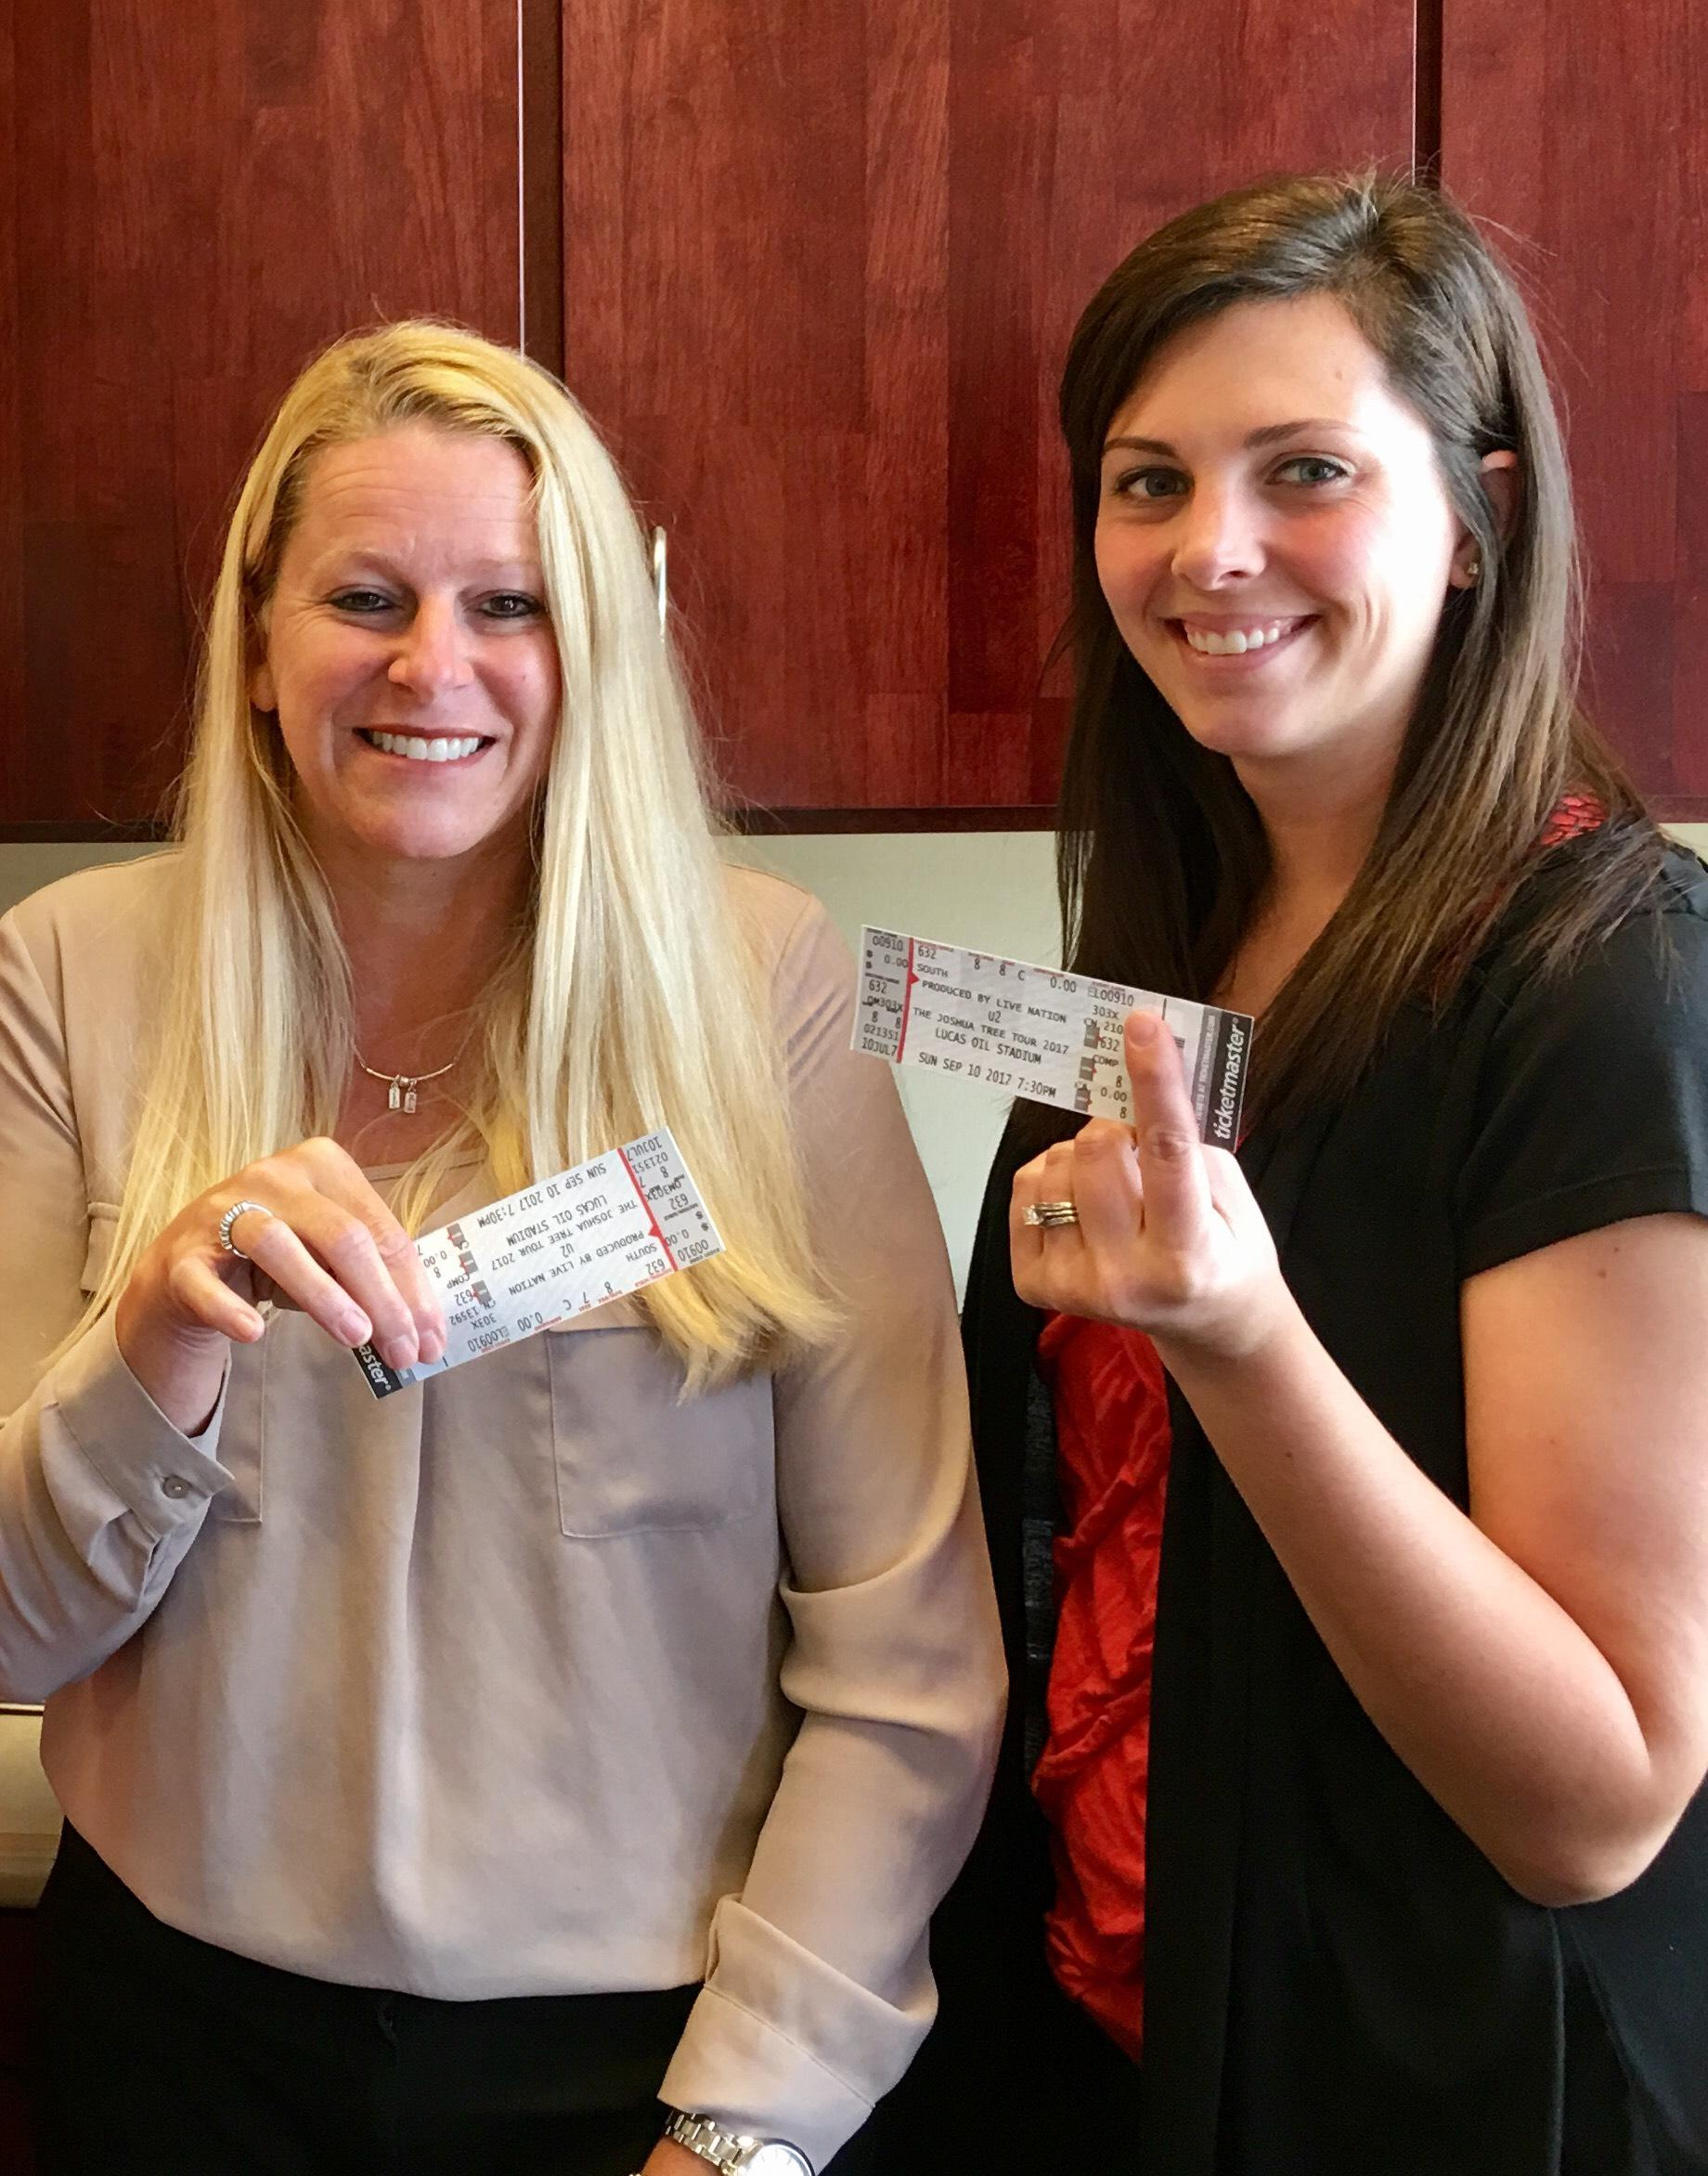 U2 tickets for contest winners